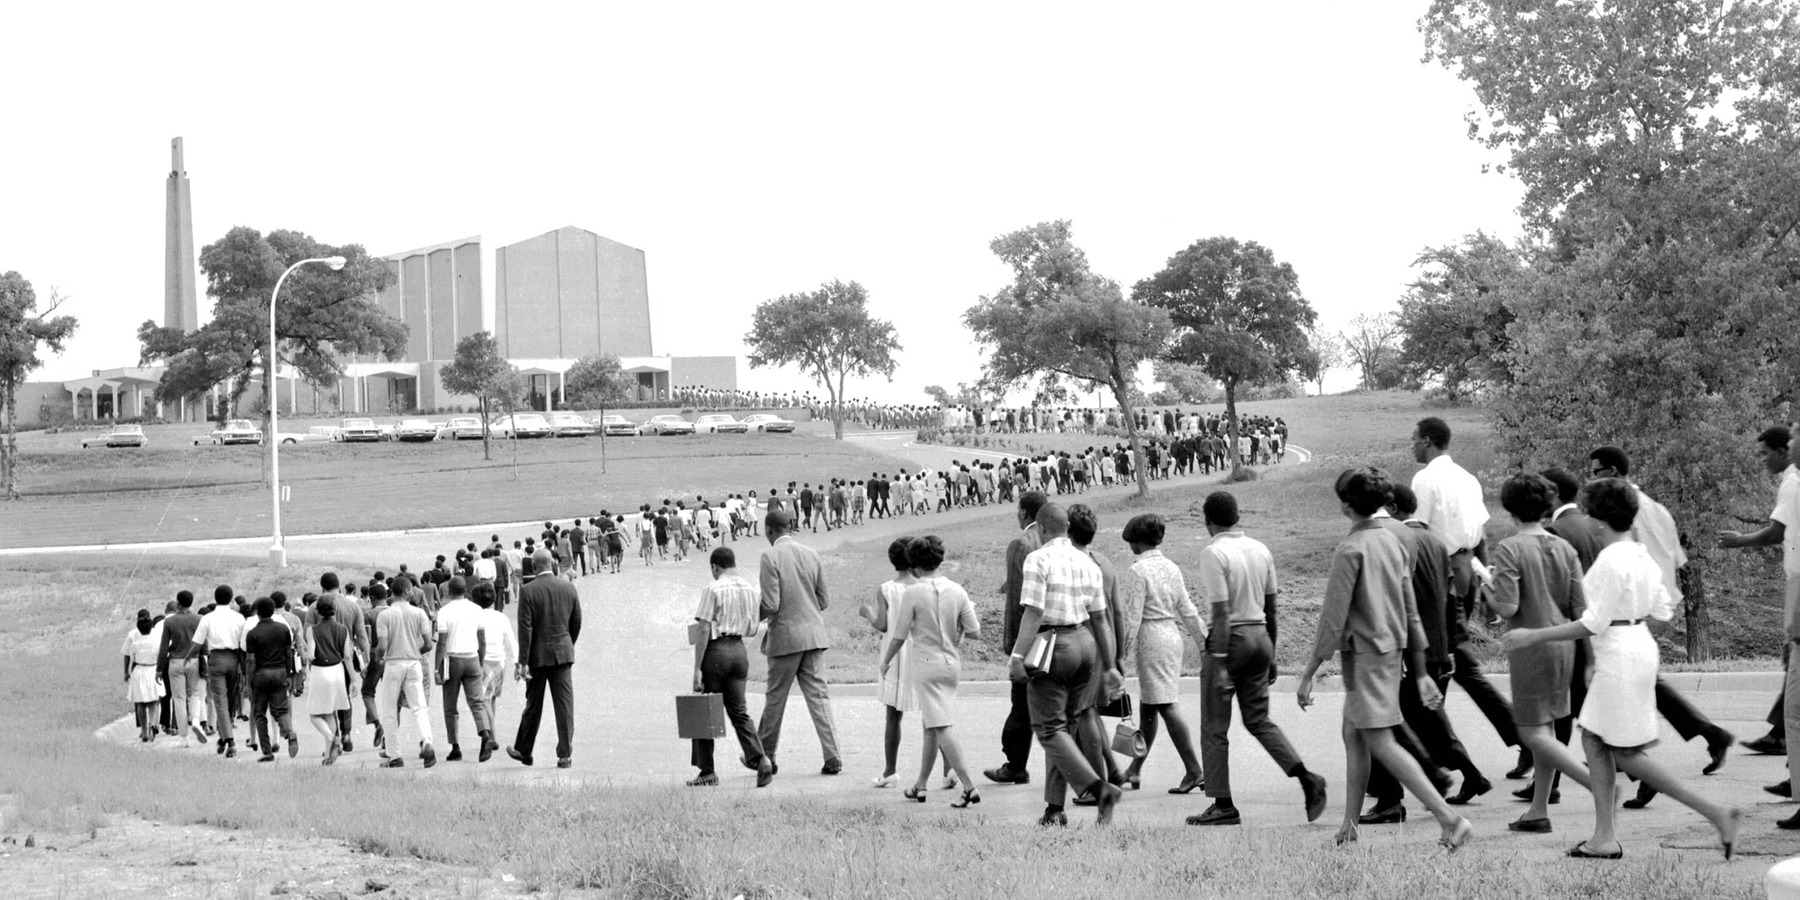 Faculty, staff and students walk toward Bishop College Chapel in Dallas for an all-night prayer vigil on April 4, 1968, after the murder of the Rev. Martin Luther King, Jr. in Memphis. In other cities, violence erupted. (Credit: Dallas Public Library)